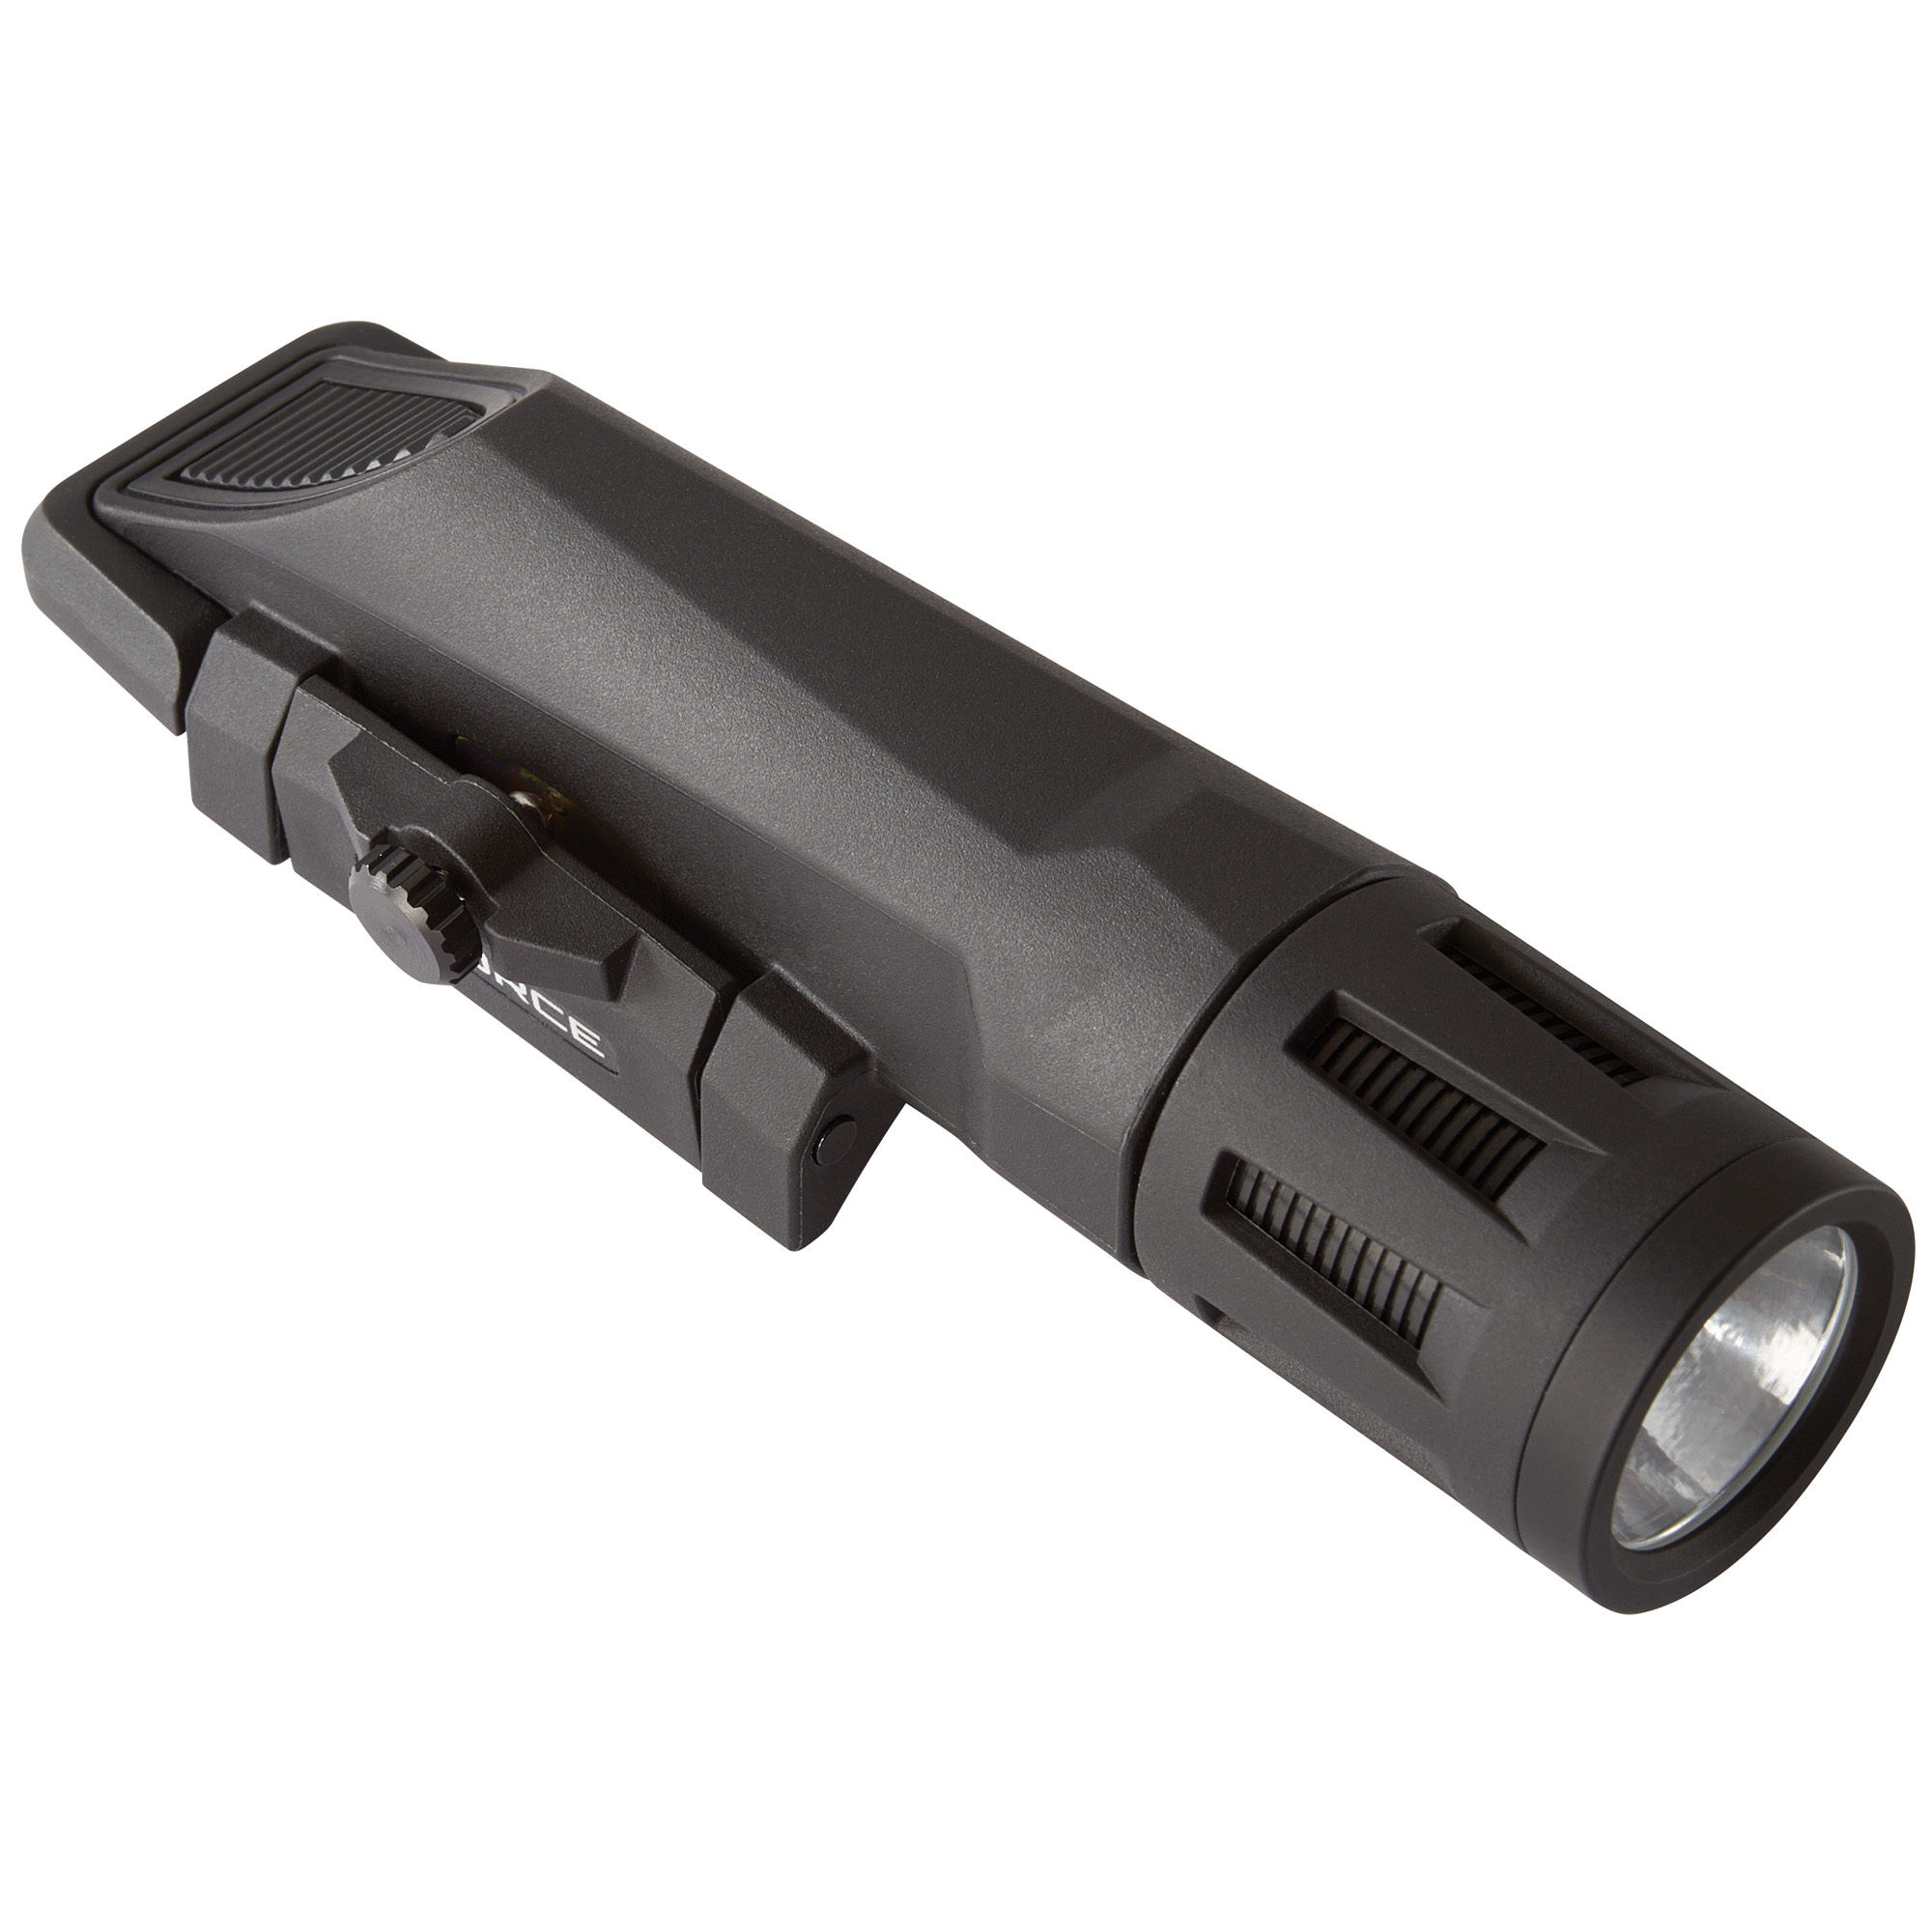 """Engineered to be lightweight and powerful"""" Inforce's WMLx Series offers 700 lumens of vibrant white light and three easy-to-use operating modes: constant"""" momentary and strobe. At just 4 ounces"""" its concentrated spot and far-reaching"""" high-intensity beam provides significant light for situational awareness and long-distance target identification. With just a flip of the lever"""" instantaneously switch between white or infrared mode. In addition"""" the easy-to-operate lockout system ensures the light isn't activated until you're ready. Our all-inclusive rail clamping design integrates seamlessly with your weapon"""" providing simple"""" fast mounting with no need for additional tools."""